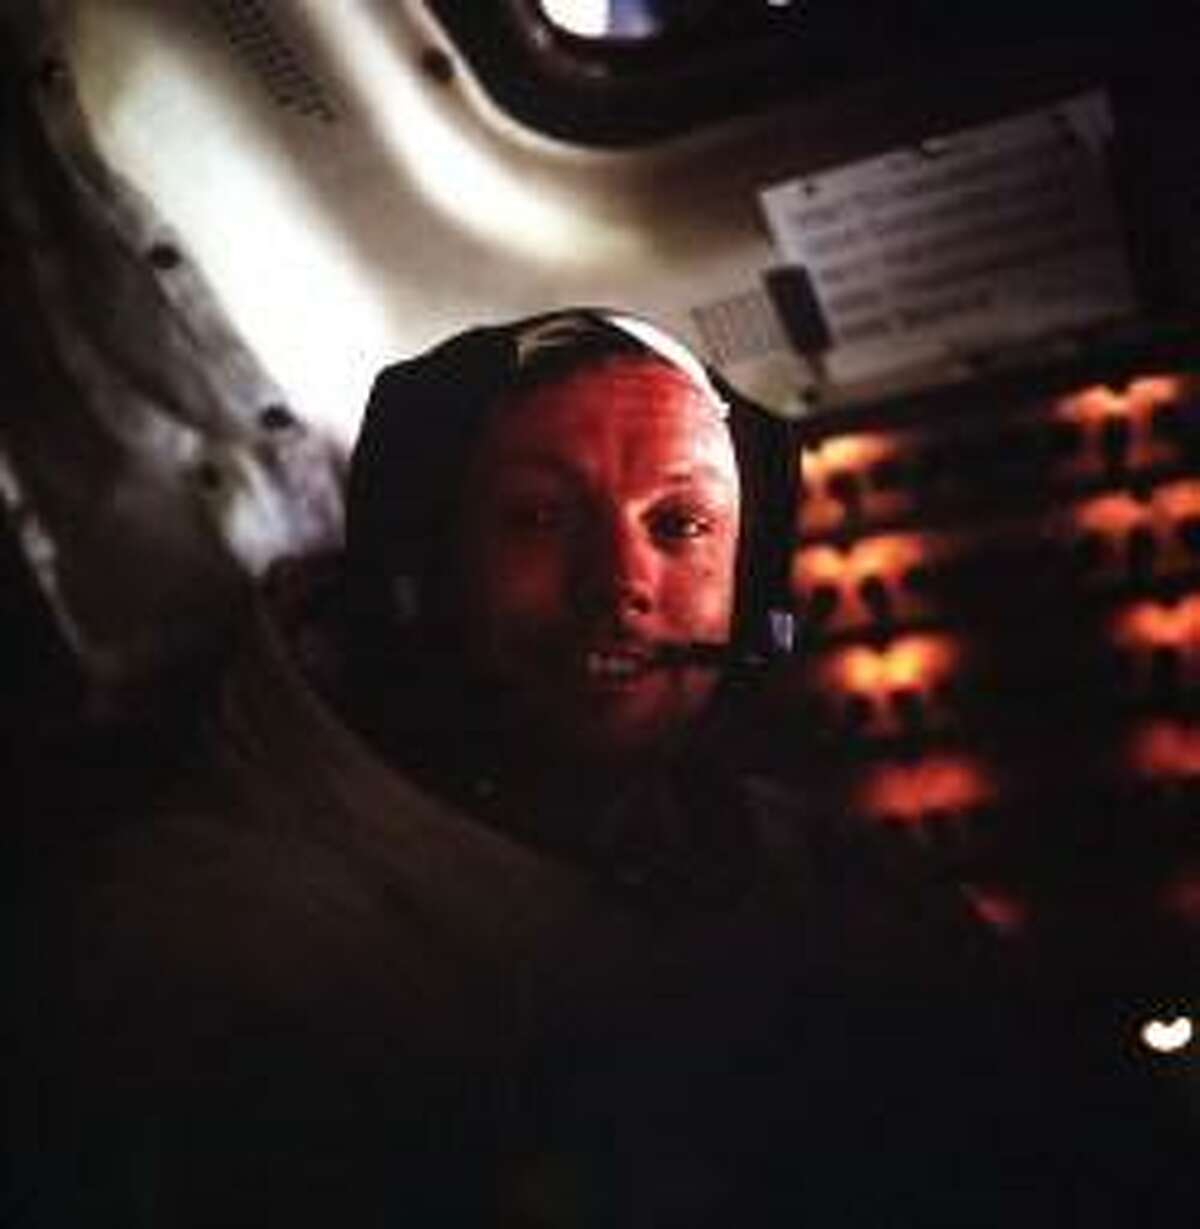 Neil A. Armstrong, Apollo 11 commander, photographed in the Lunar Module while it rested on the lunar surface.